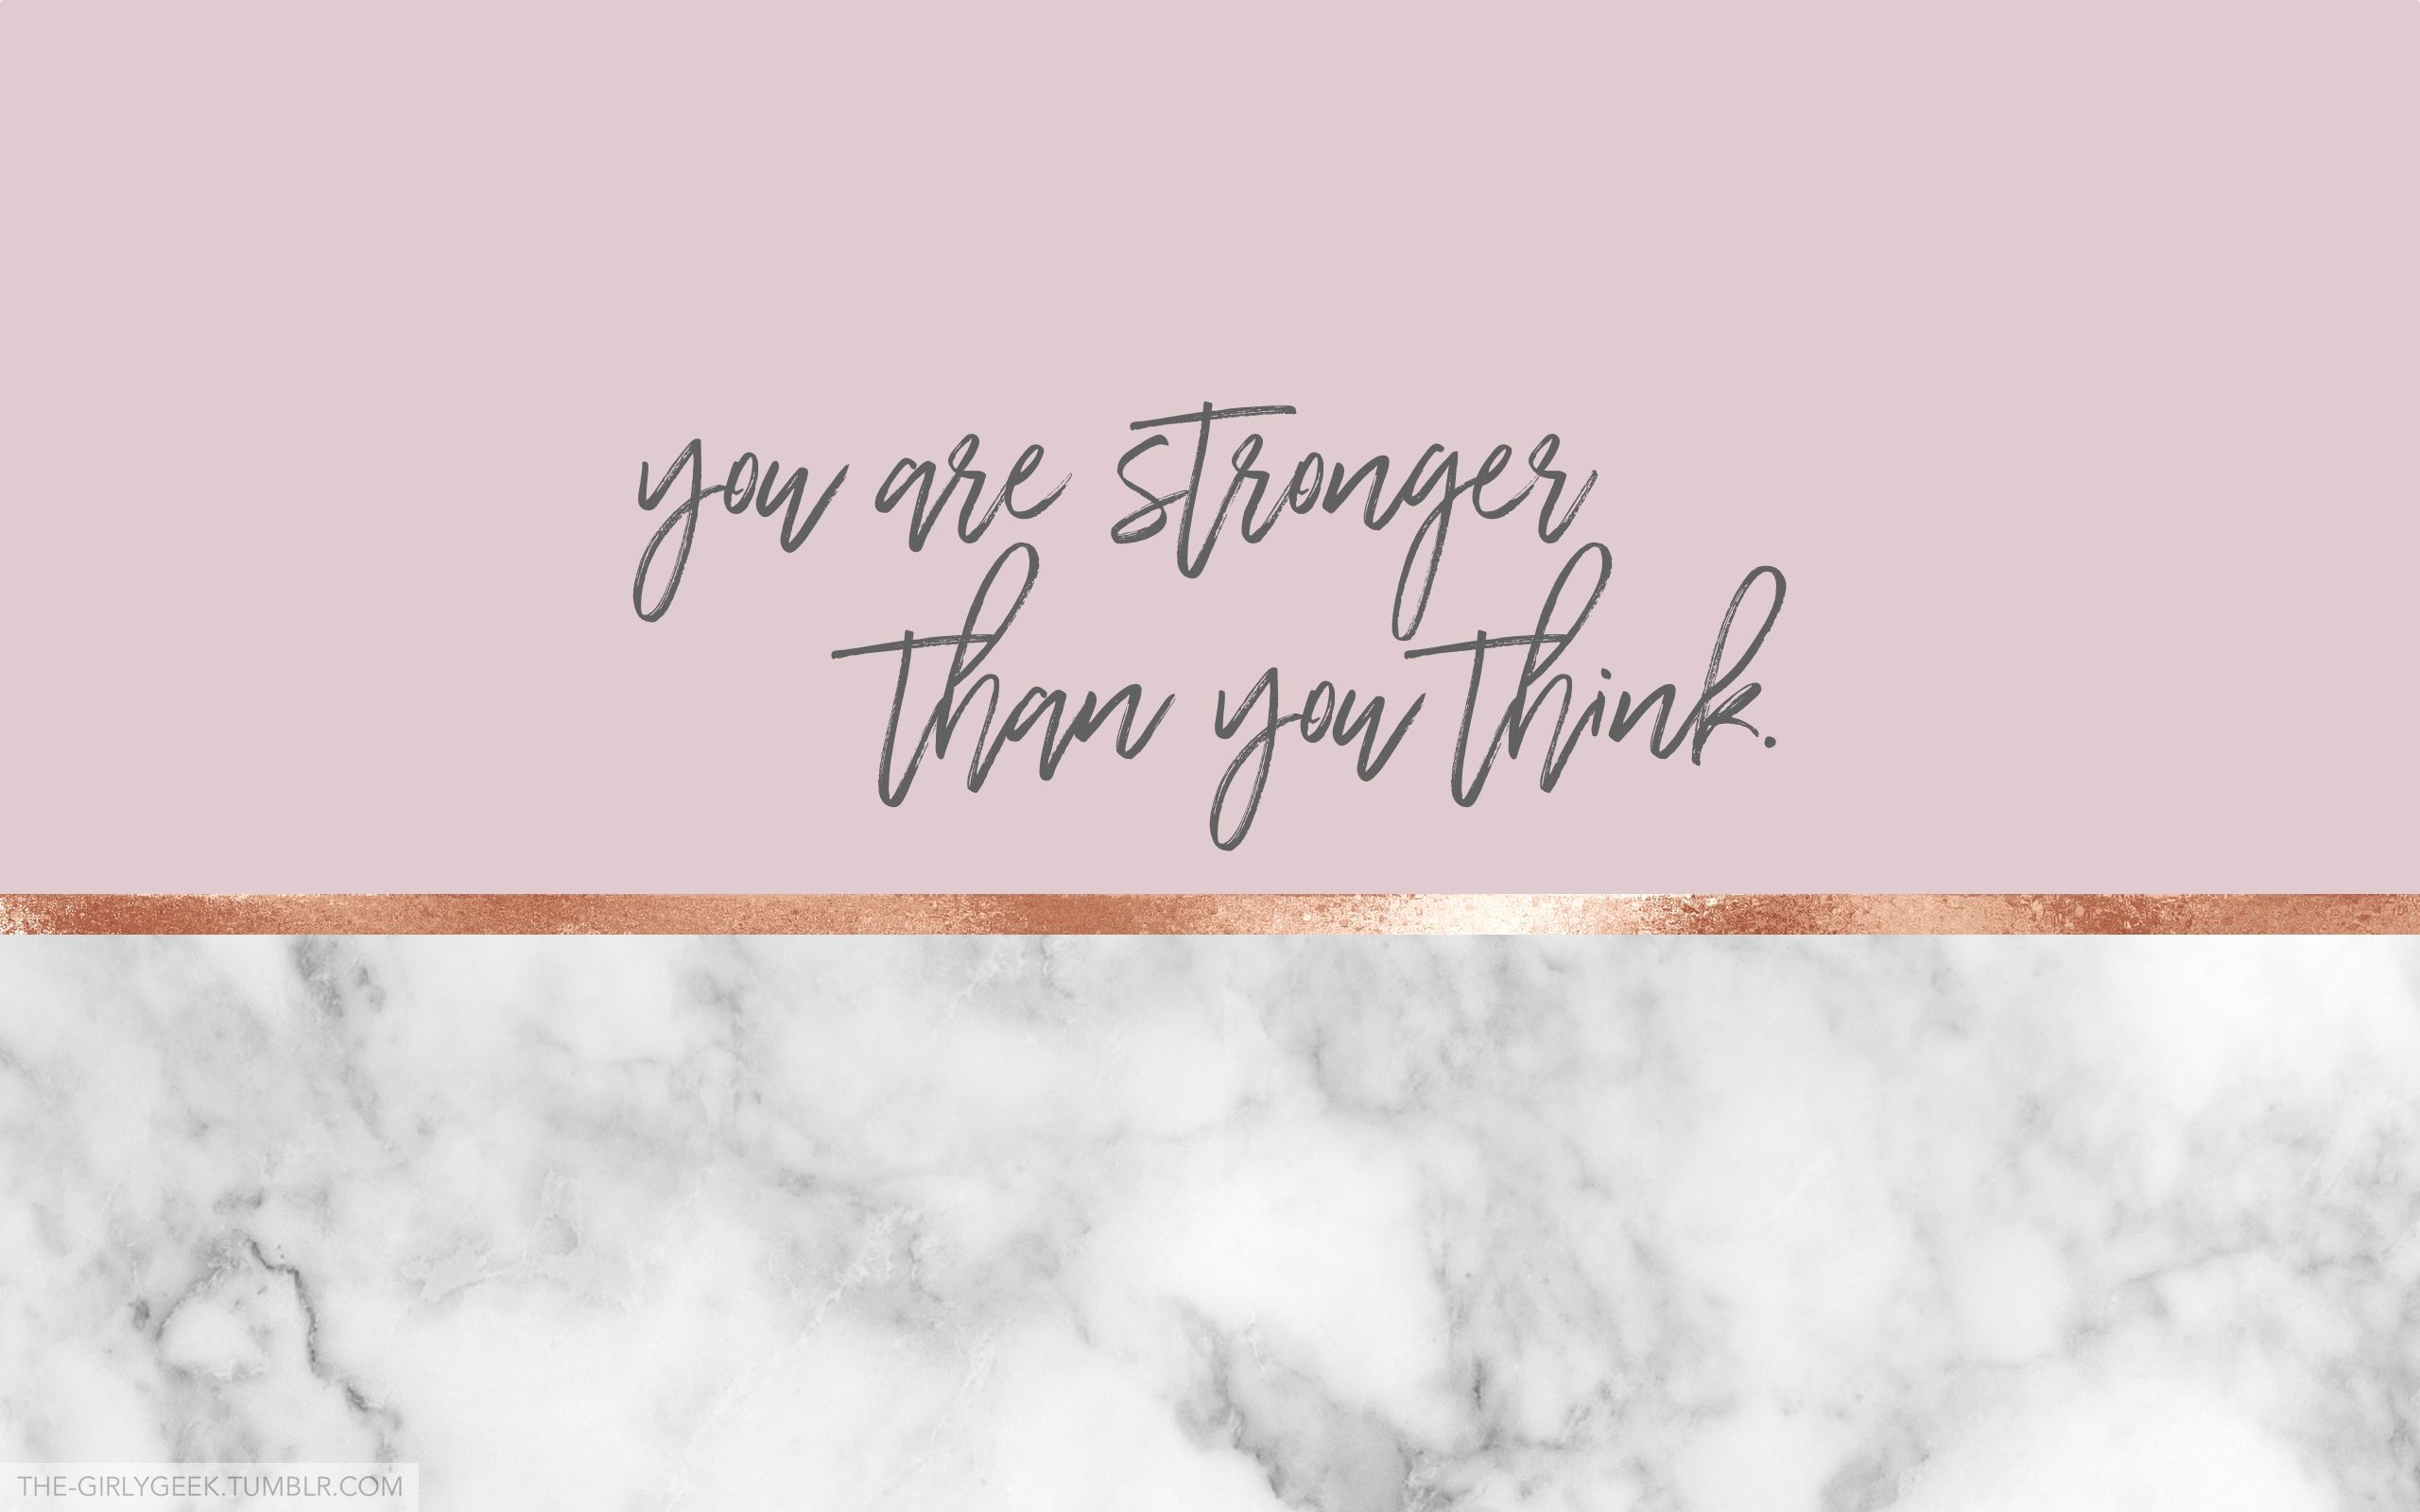 You Are Stronger Than You Think Laptop Wallpaper Desktop Wallpapers Laptop Wallpaper Computer Wallpaper Desktop Wallpapers